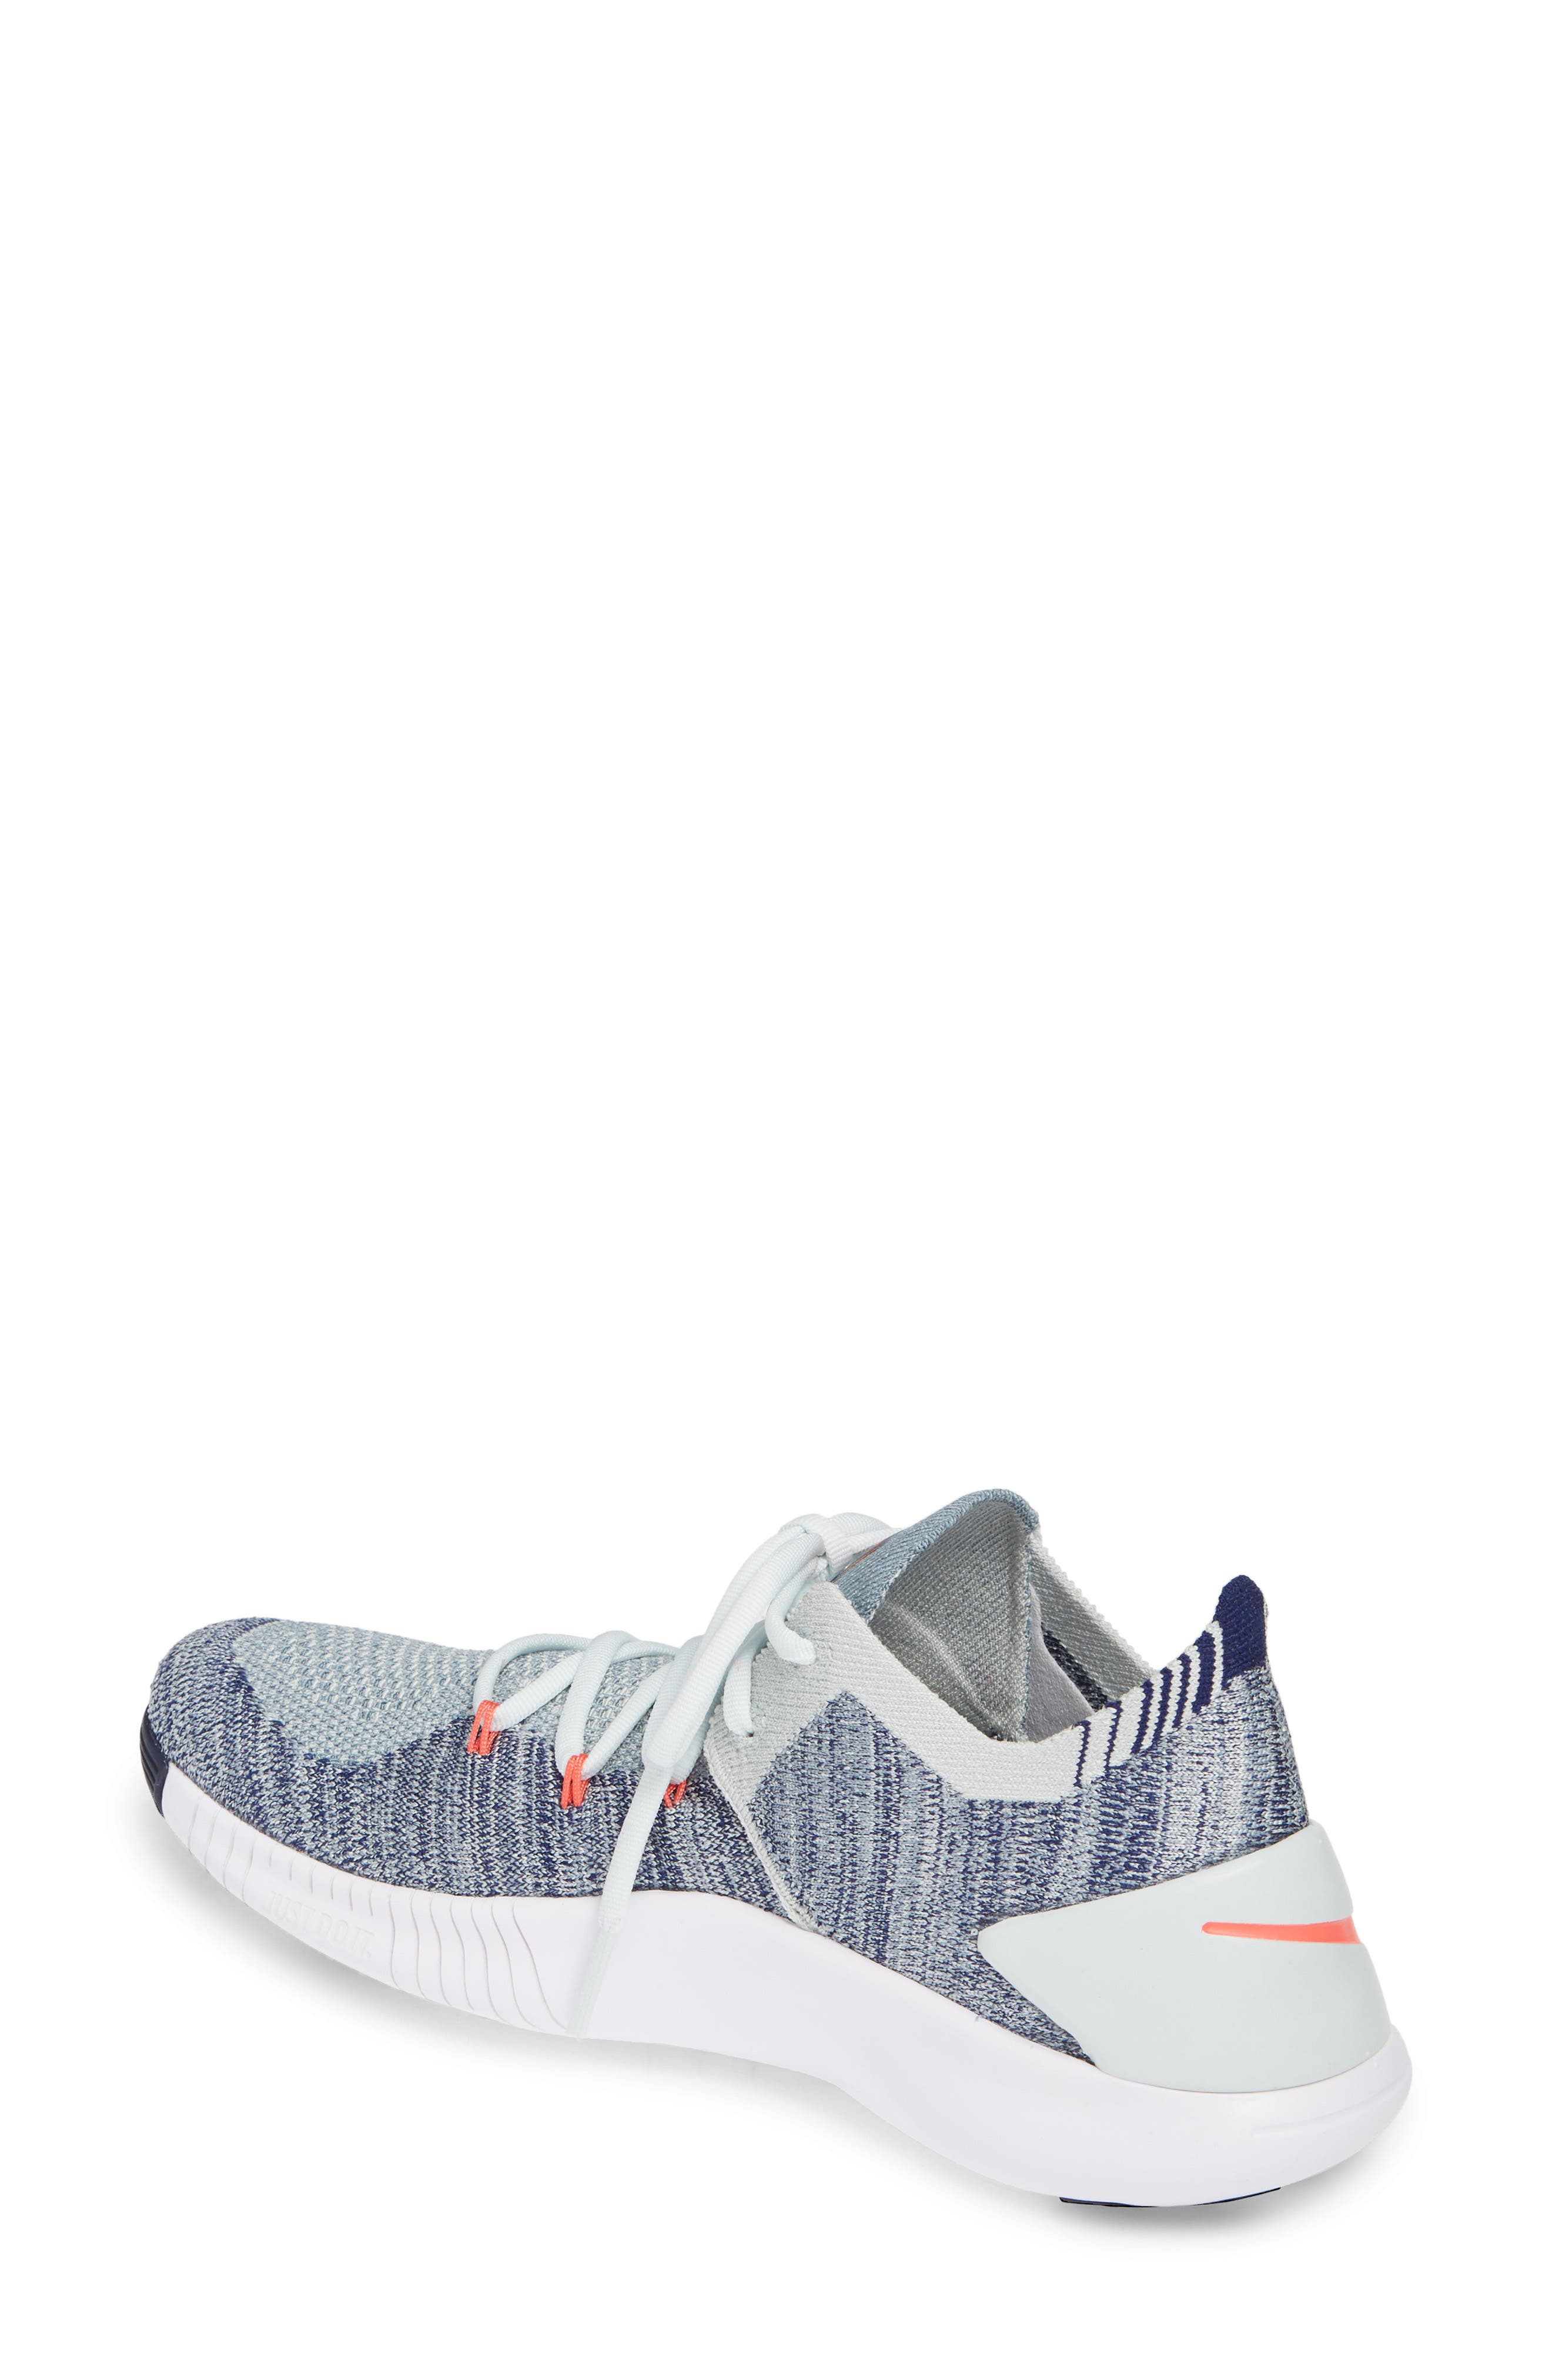 Free TR Flyknit 3 Training Shoe,                             Alternate thumbnail 2, color,                             BARELY GREY/ EMBER GLOW/ BLUE